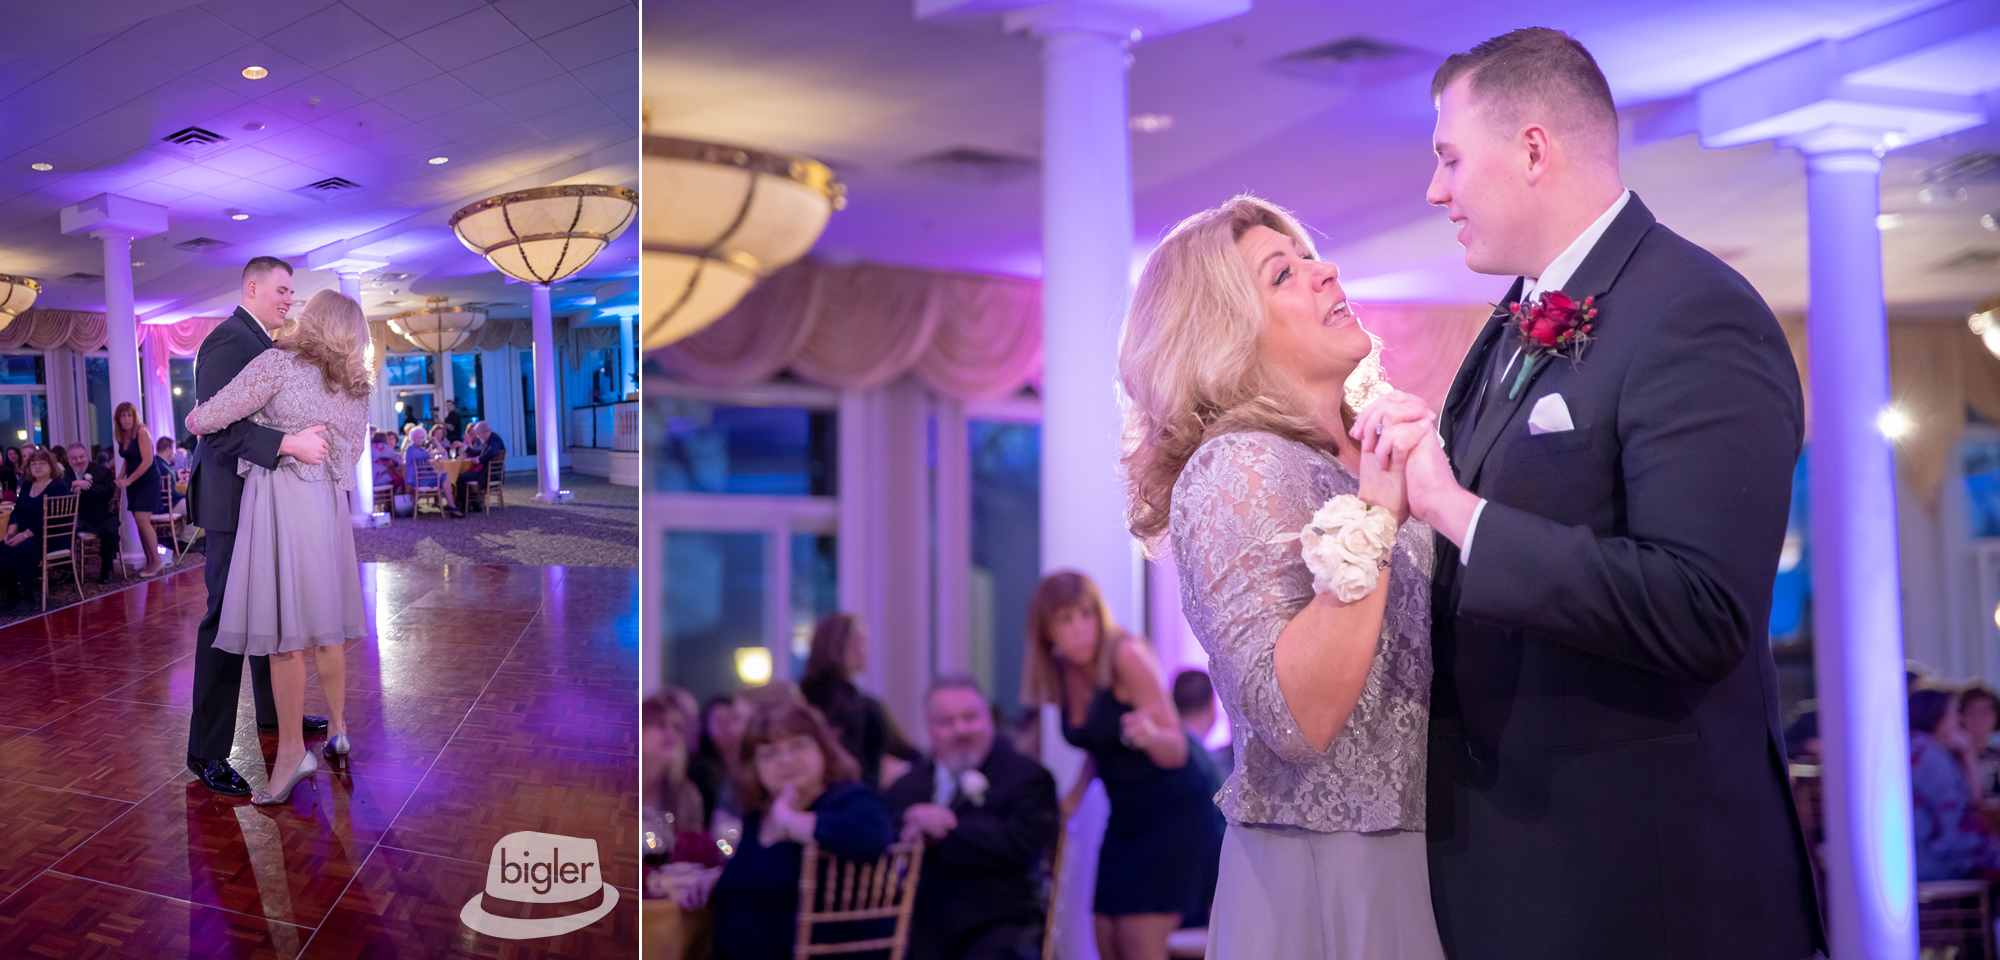 20181110_-_28_-_Amanda_and_Michael,_Albany_Country_Club,_Wedding_Photos